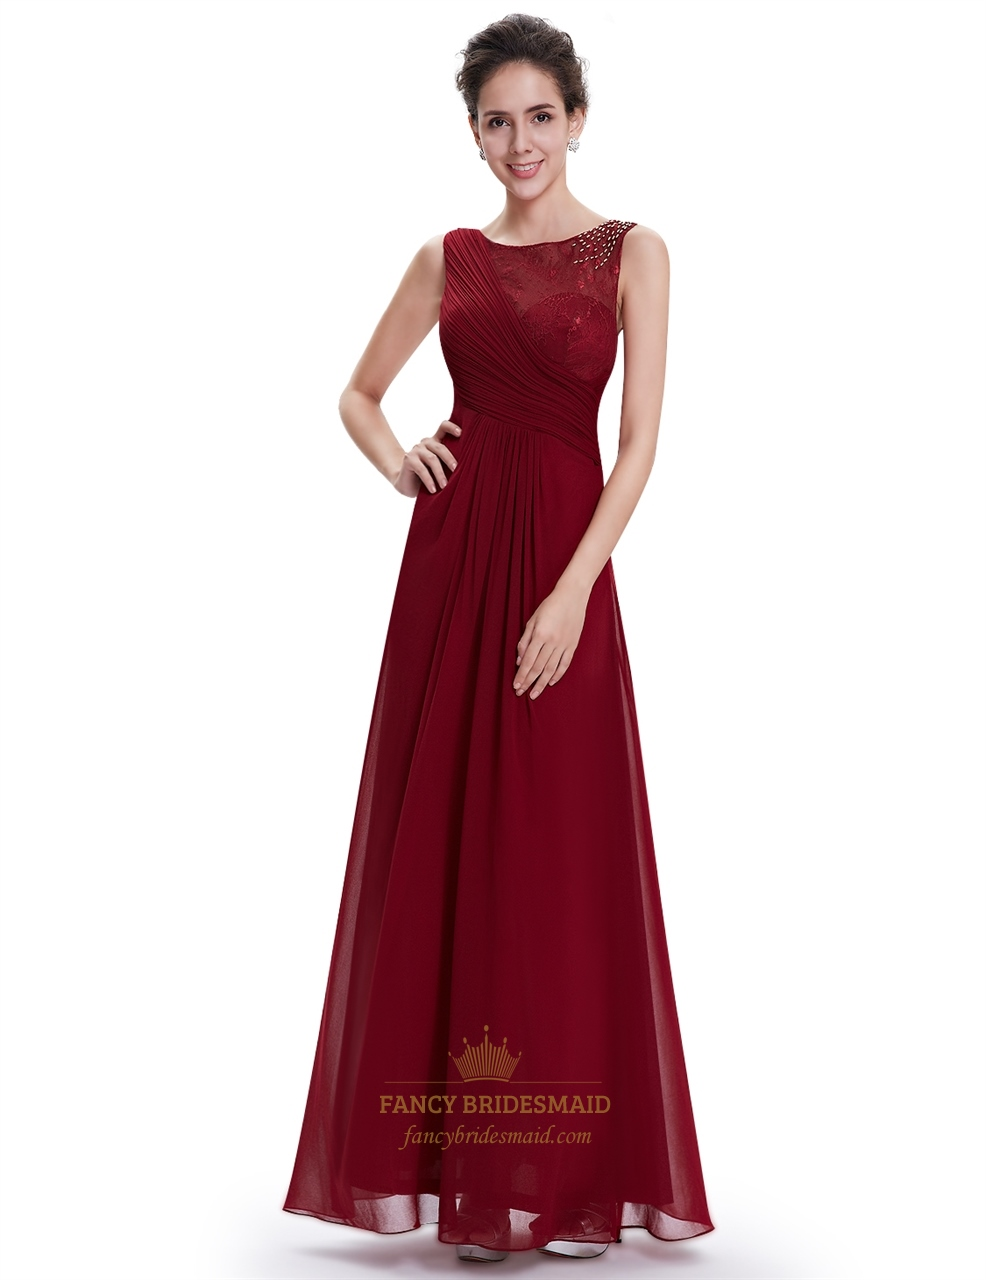 Burgundy lace top chiffon long bridesmaid dresses with beaded burgundy lace top chiffon long bridesmaid dresses with beaded detail ombrellifo Gallery